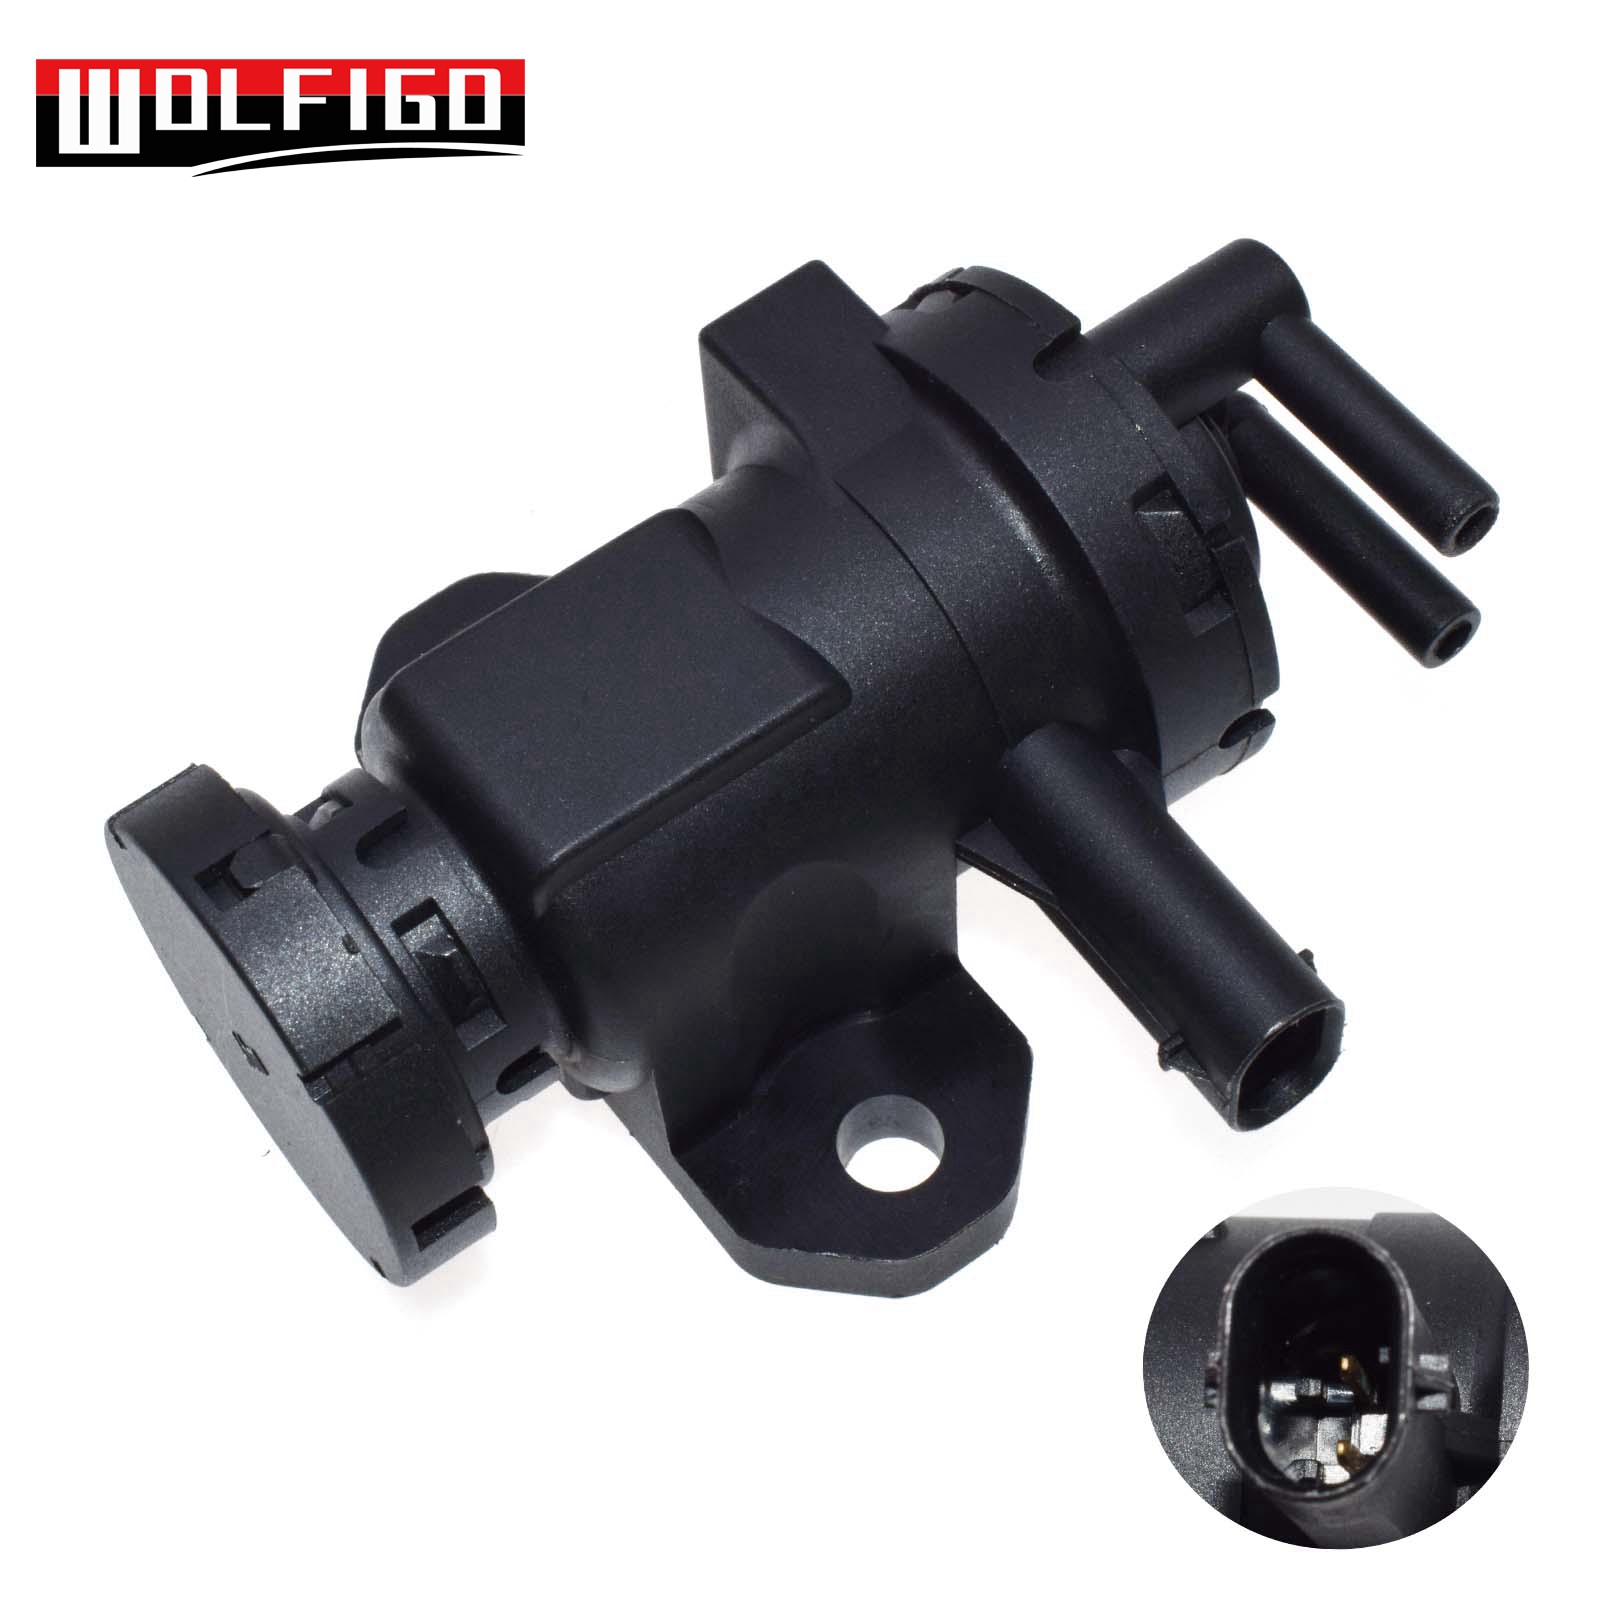 WOLFIGO New 11657808032 Turbo Pressure Solenoid Valve Fit For BMW 1 5 6 7 X3 X5 X6 11658509323